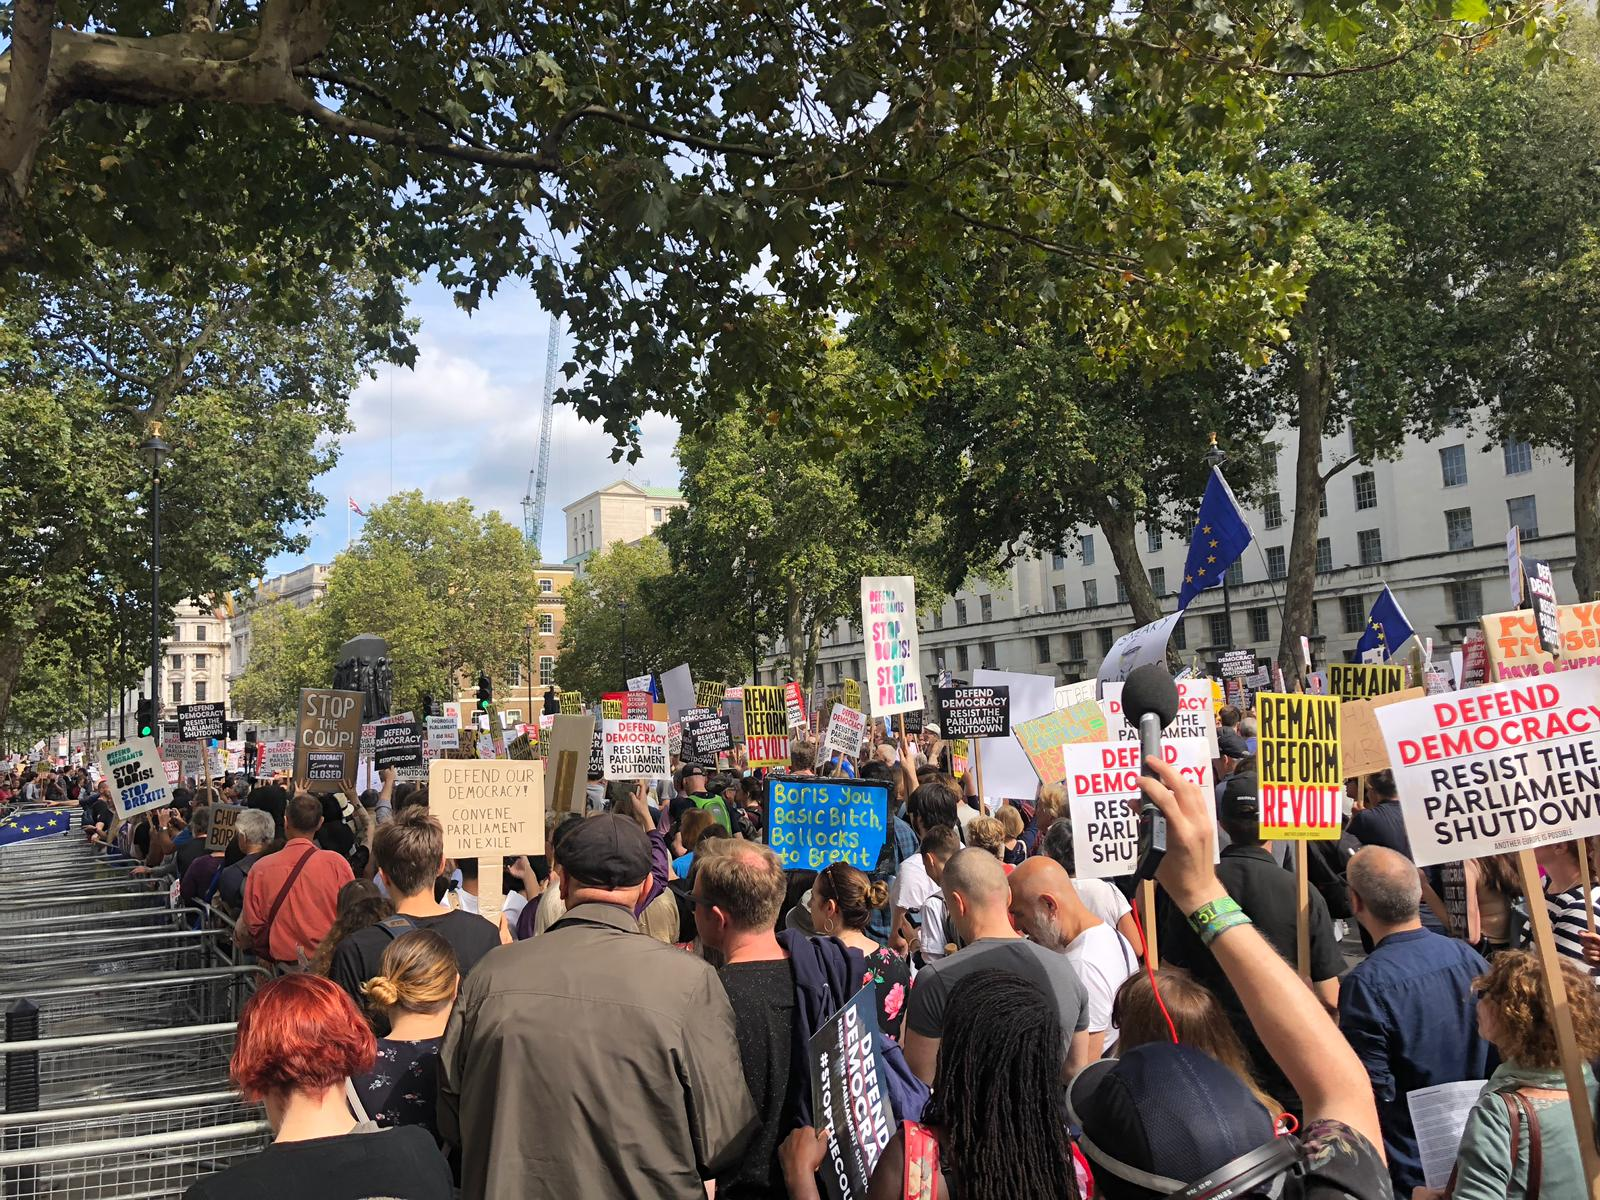 Protesters in Westminster on Saturday morning.